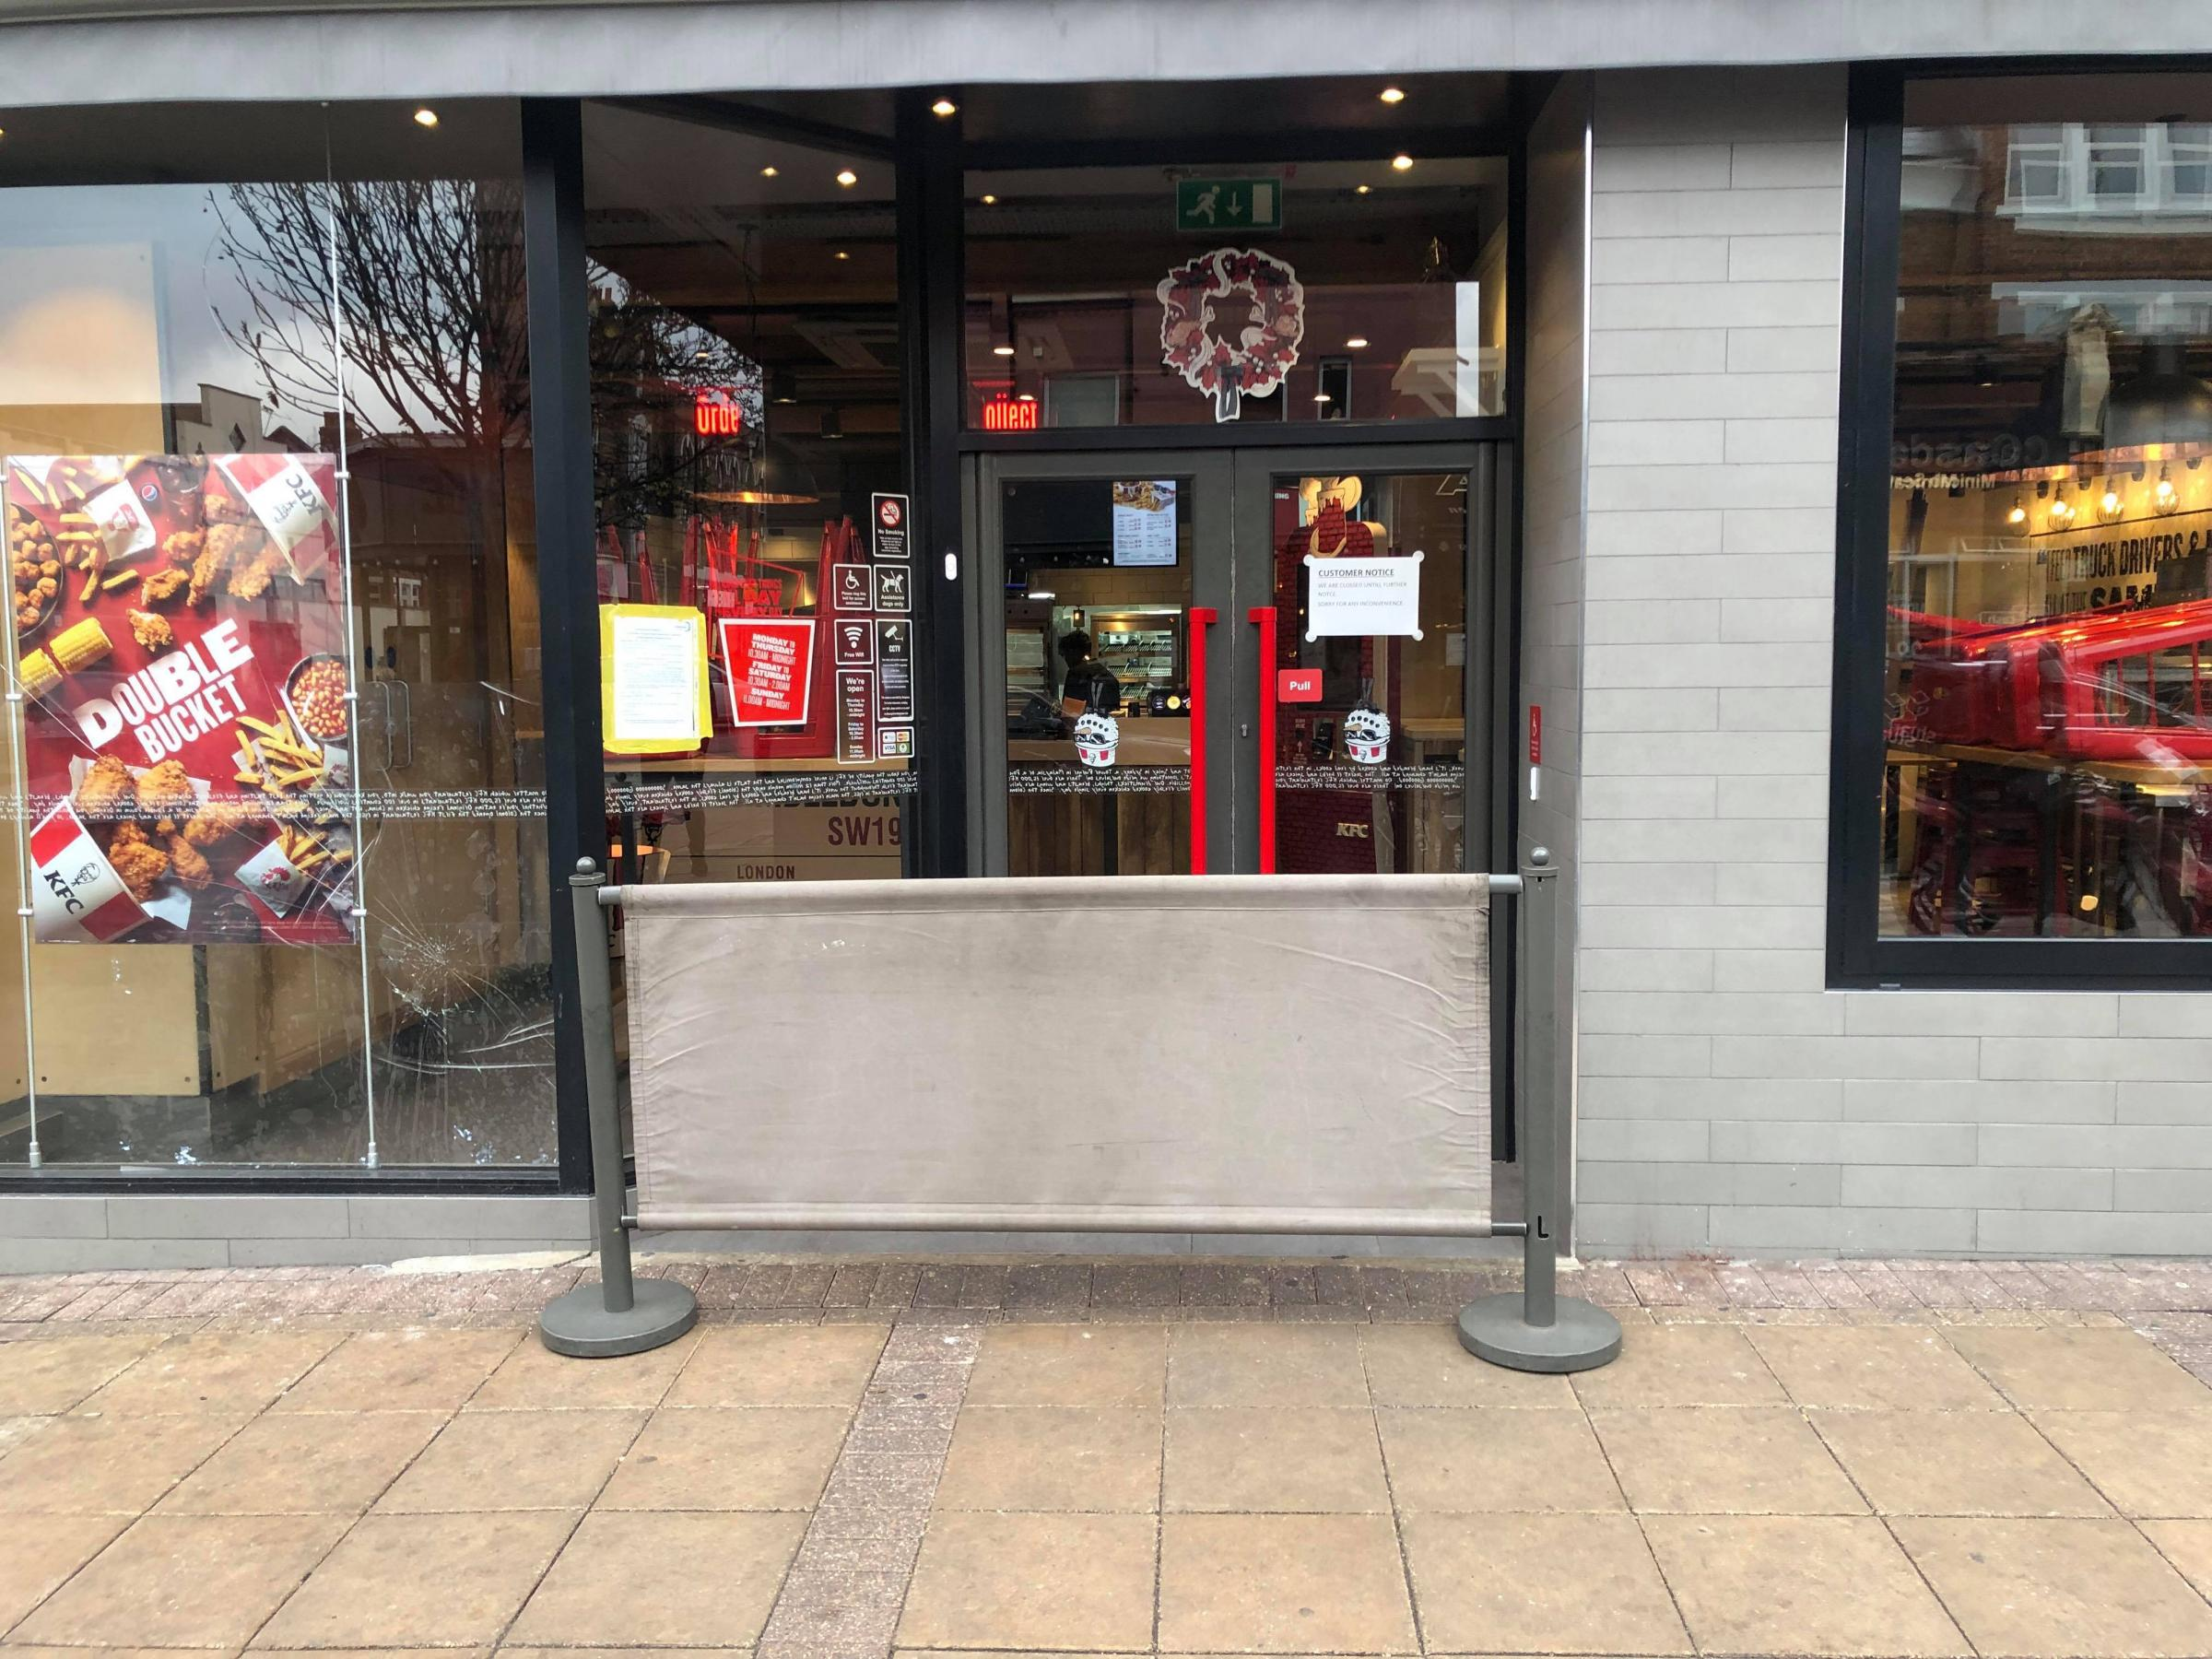 KFC in Wimbledon closed by the courts